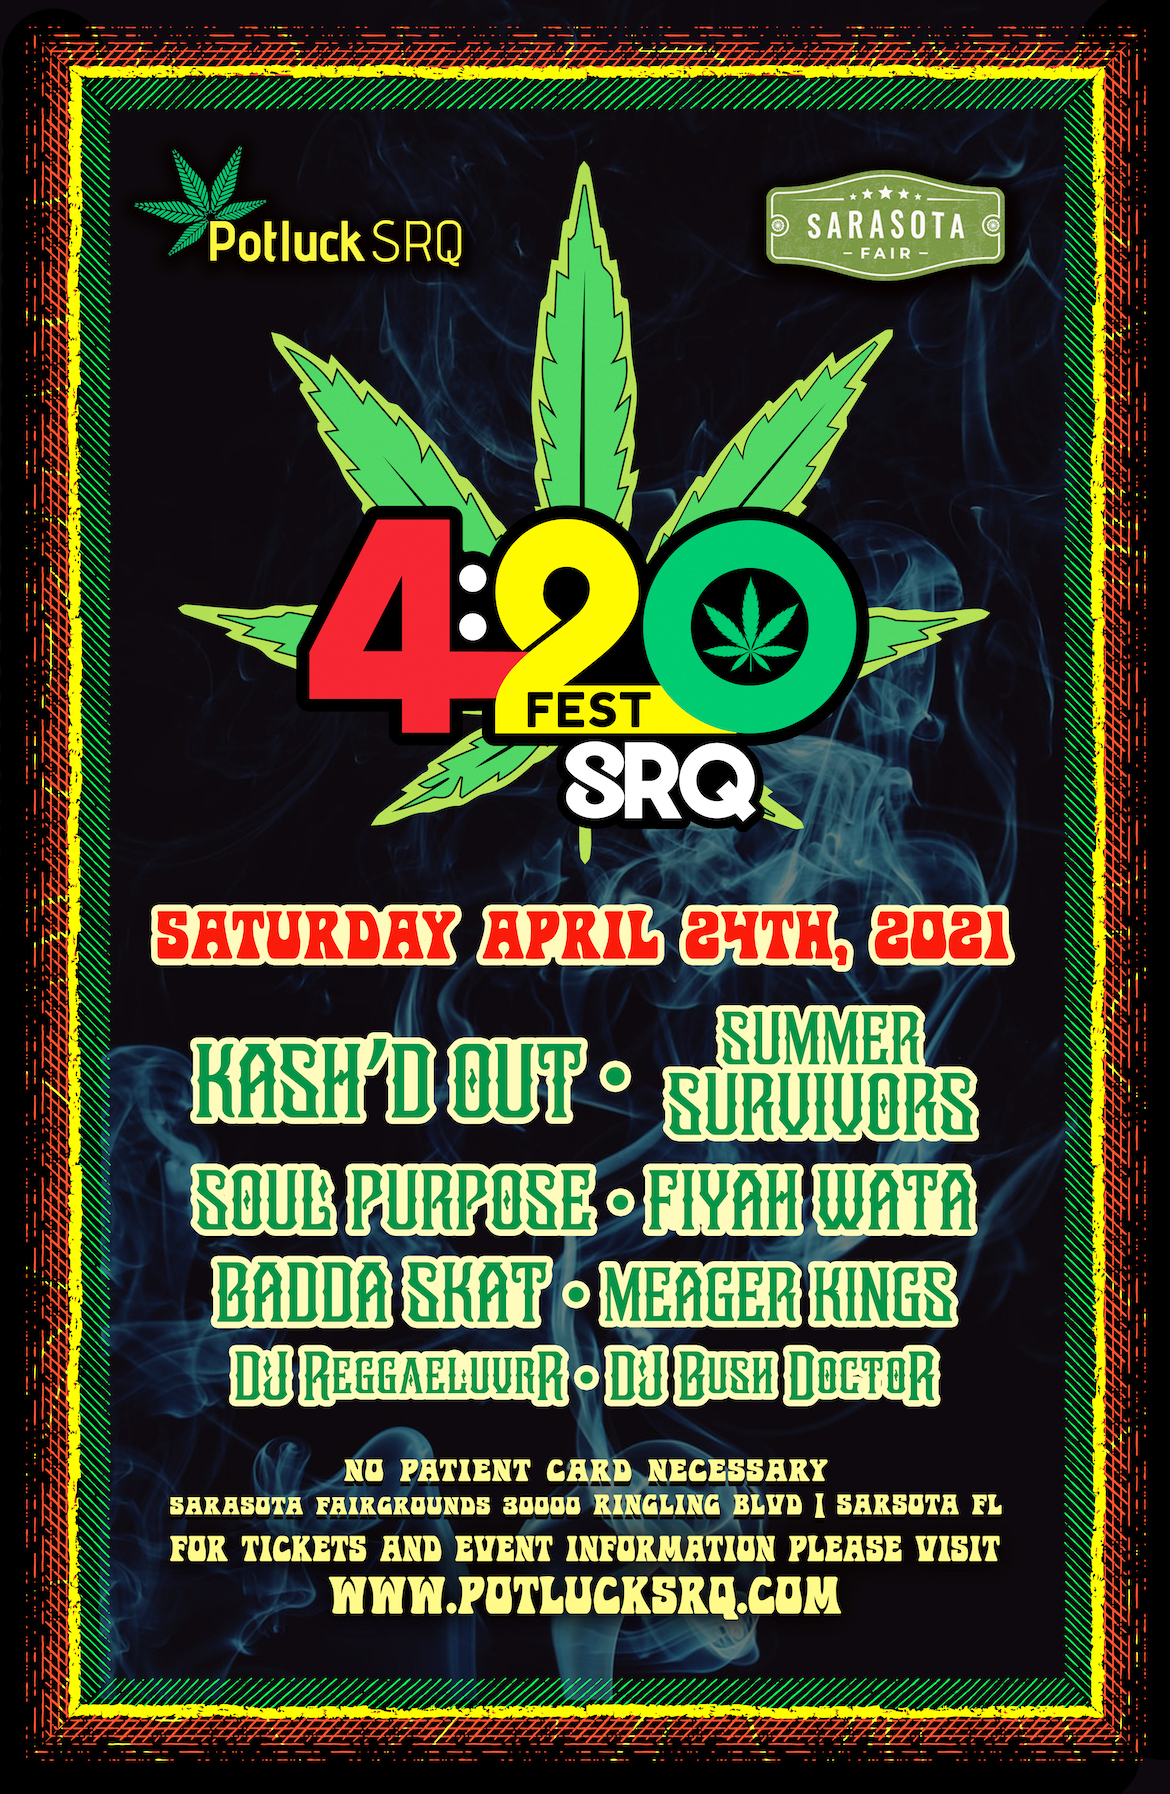 Poster for the 420FEST GRQ Event